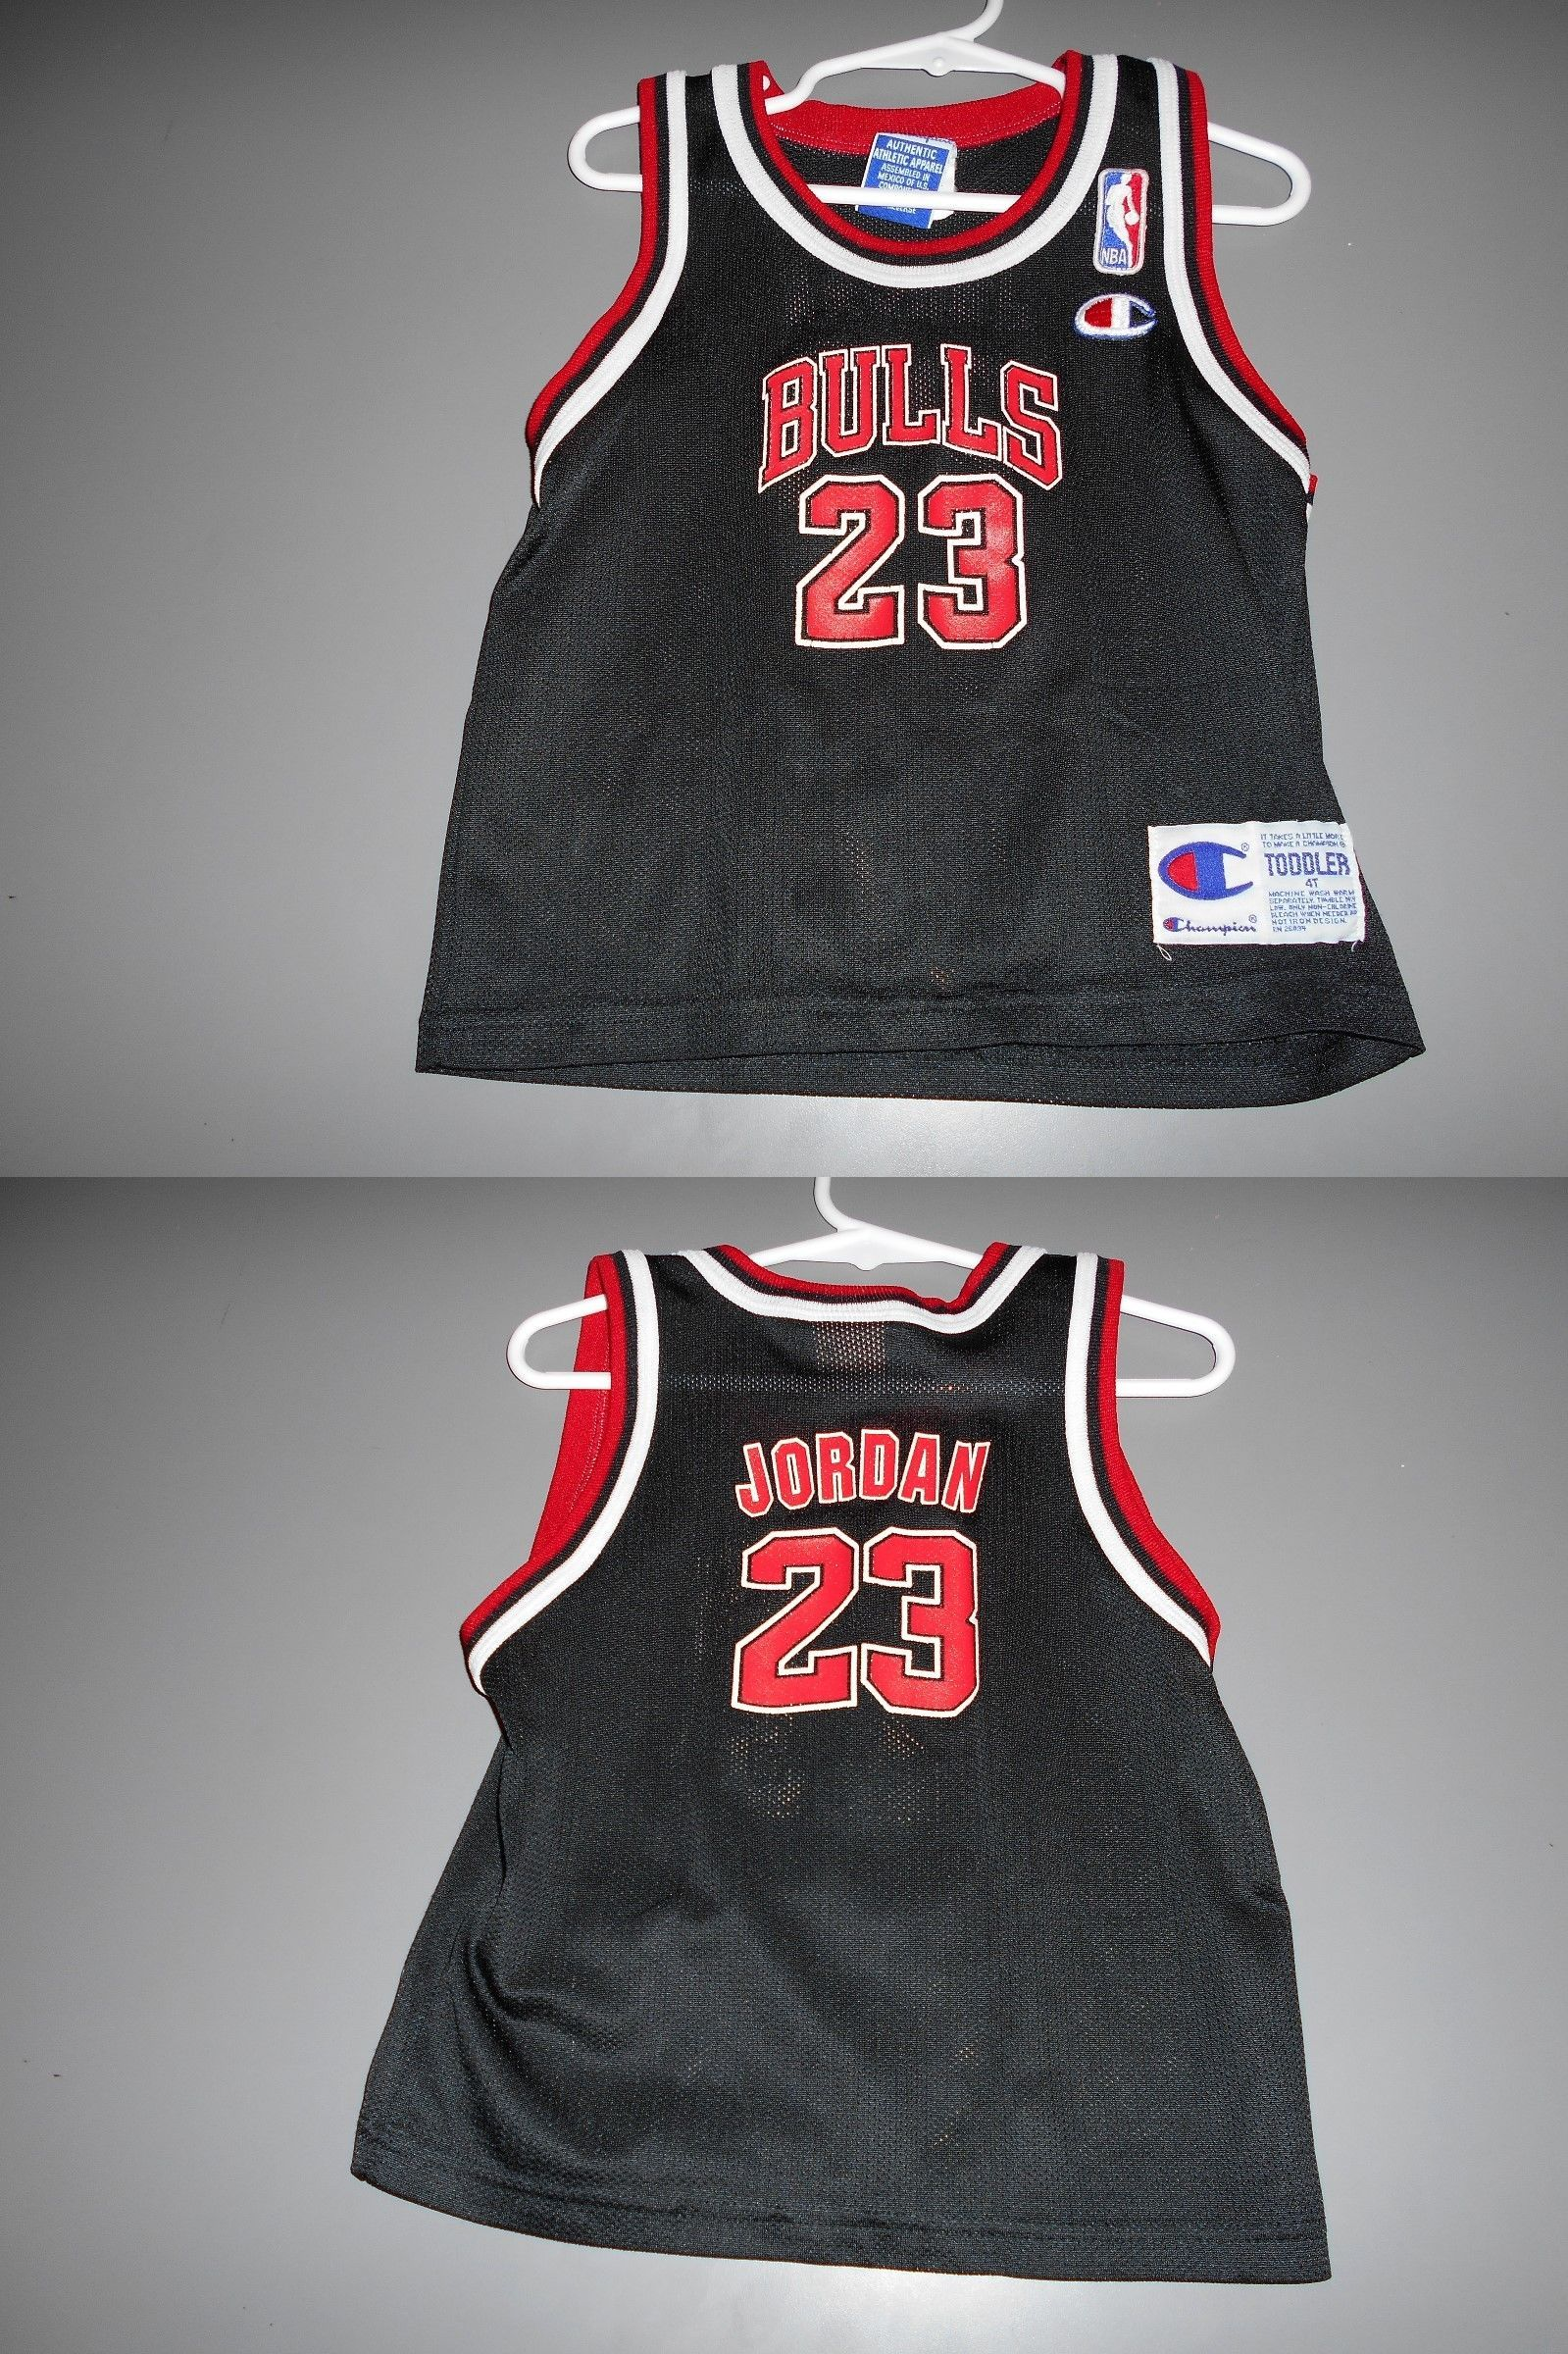 64c6b8a0352 Michael Jordan Baby Clothing: Chicago Bulls Michael Jordan Toddler Jersey  Size 4T. BUY IT NOW ONLY: $75.0